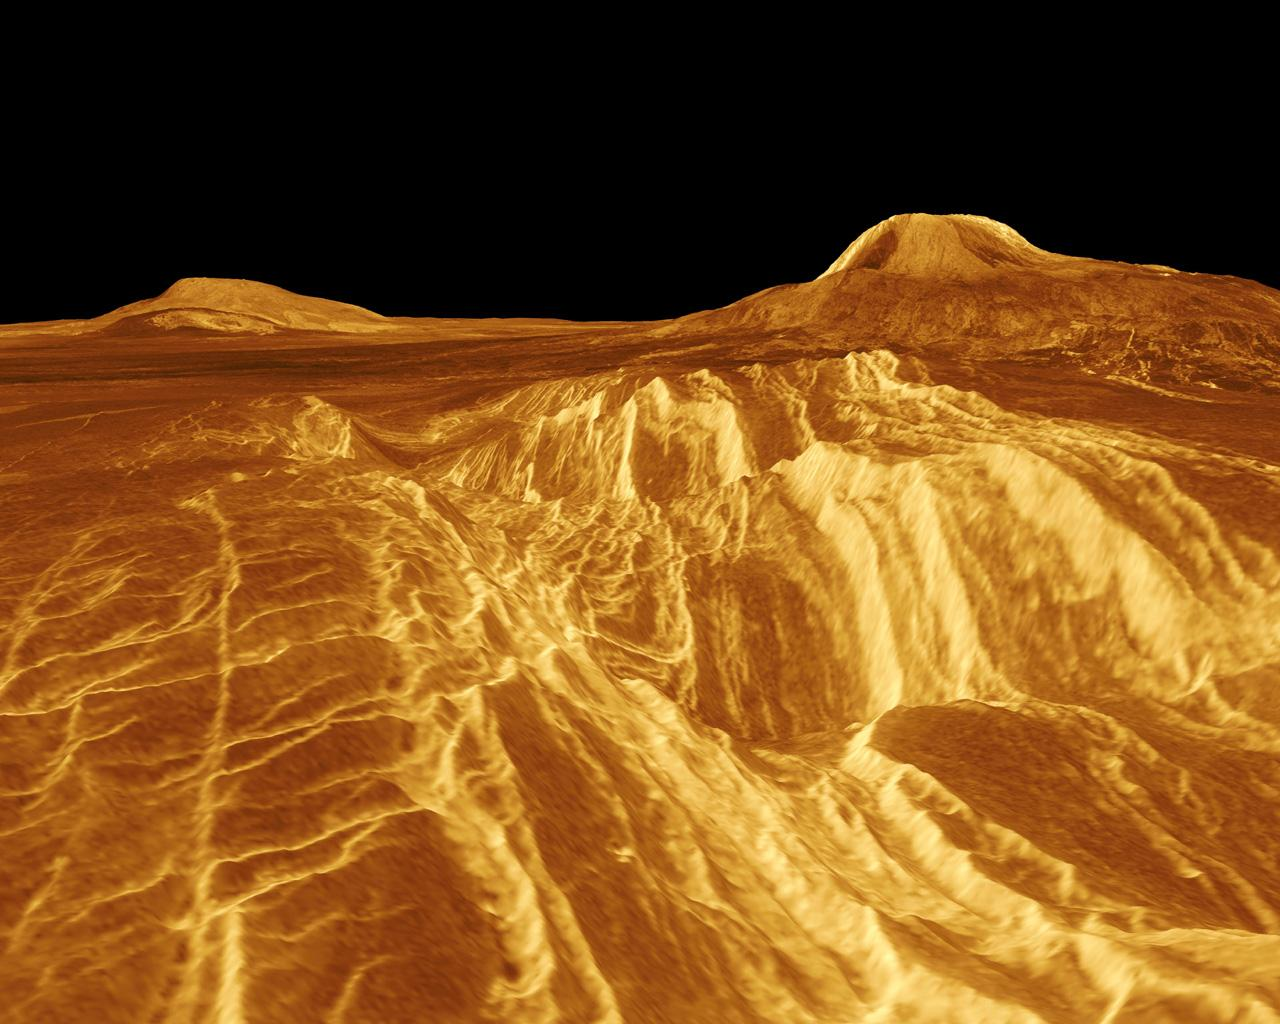 A portion of western Eistla Regio is shown in this three dimensional, computer-generated view of the surface of Venus. This NASA Magellan image was released on April 22, 1992.